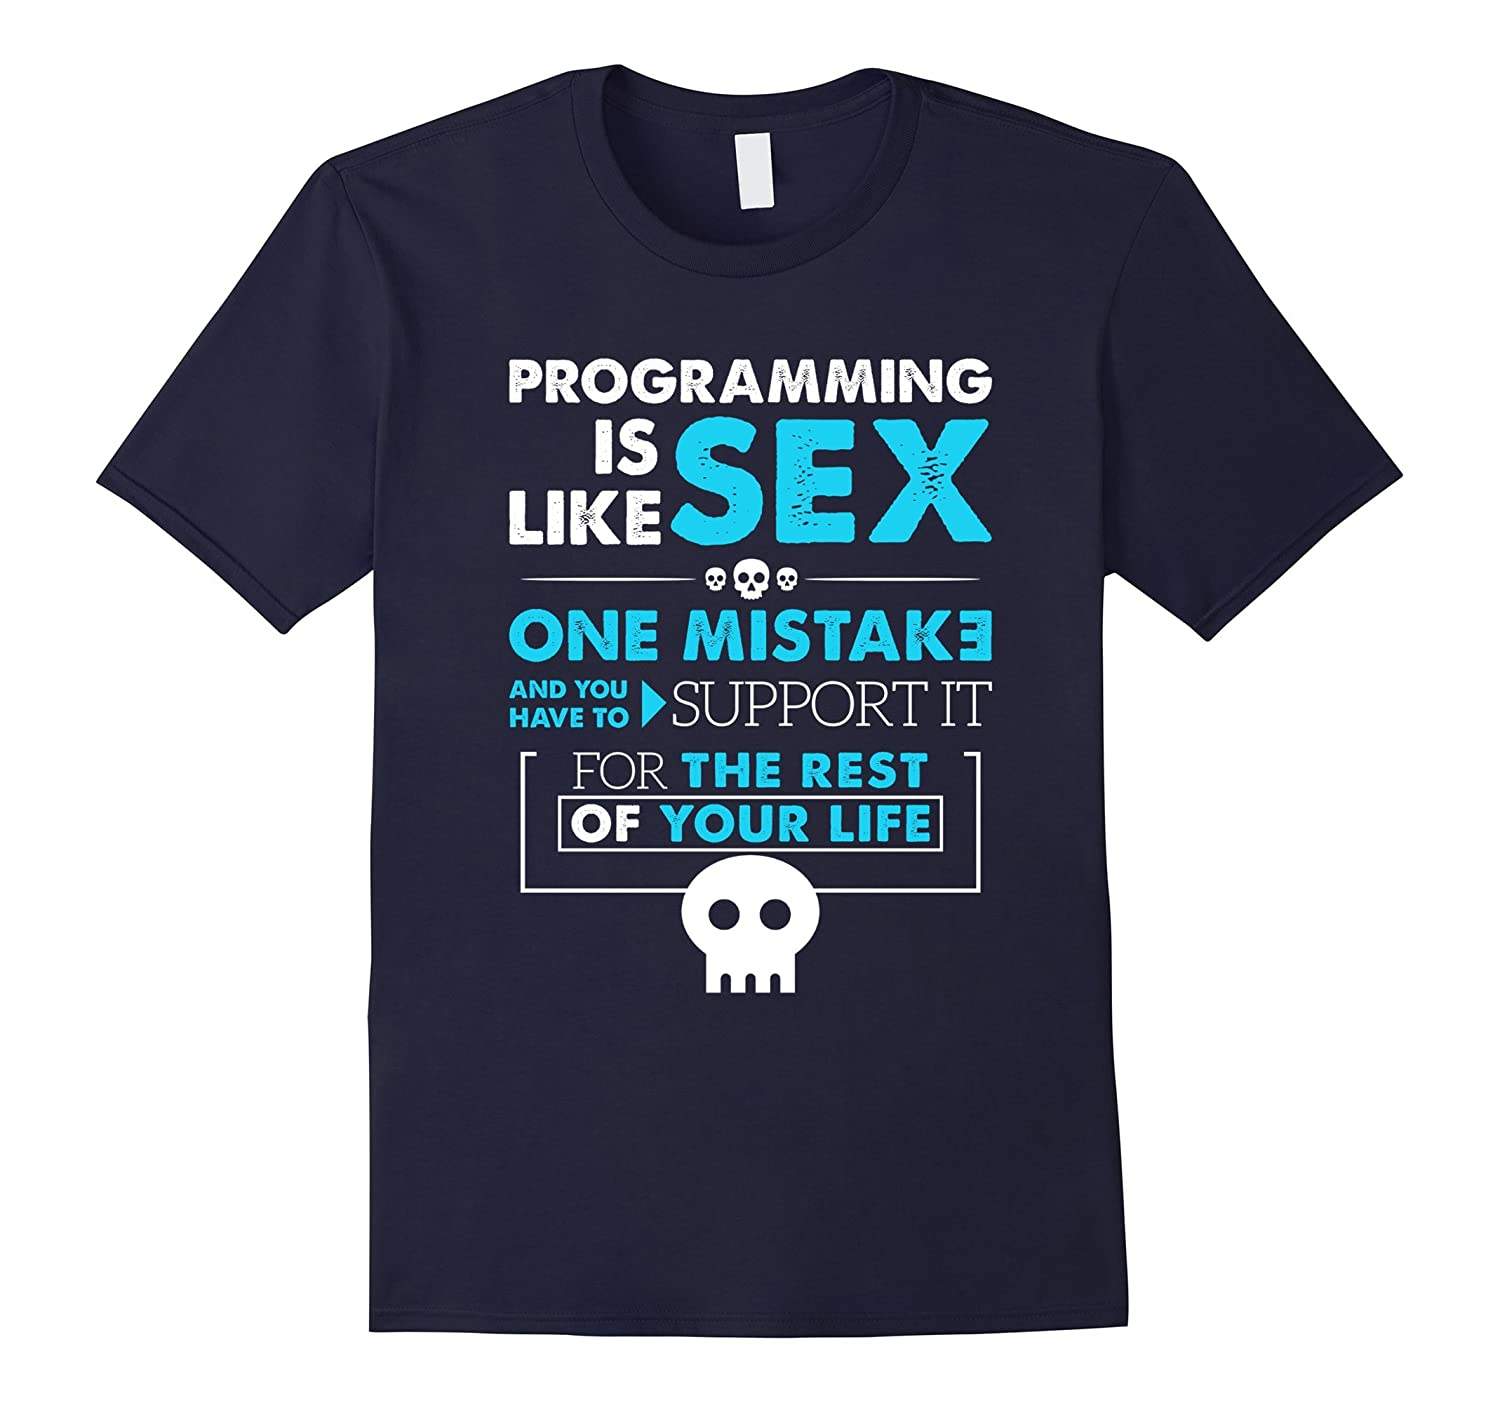 Programming Is Like Sex Funny Tshirt special for Programmer-TJ